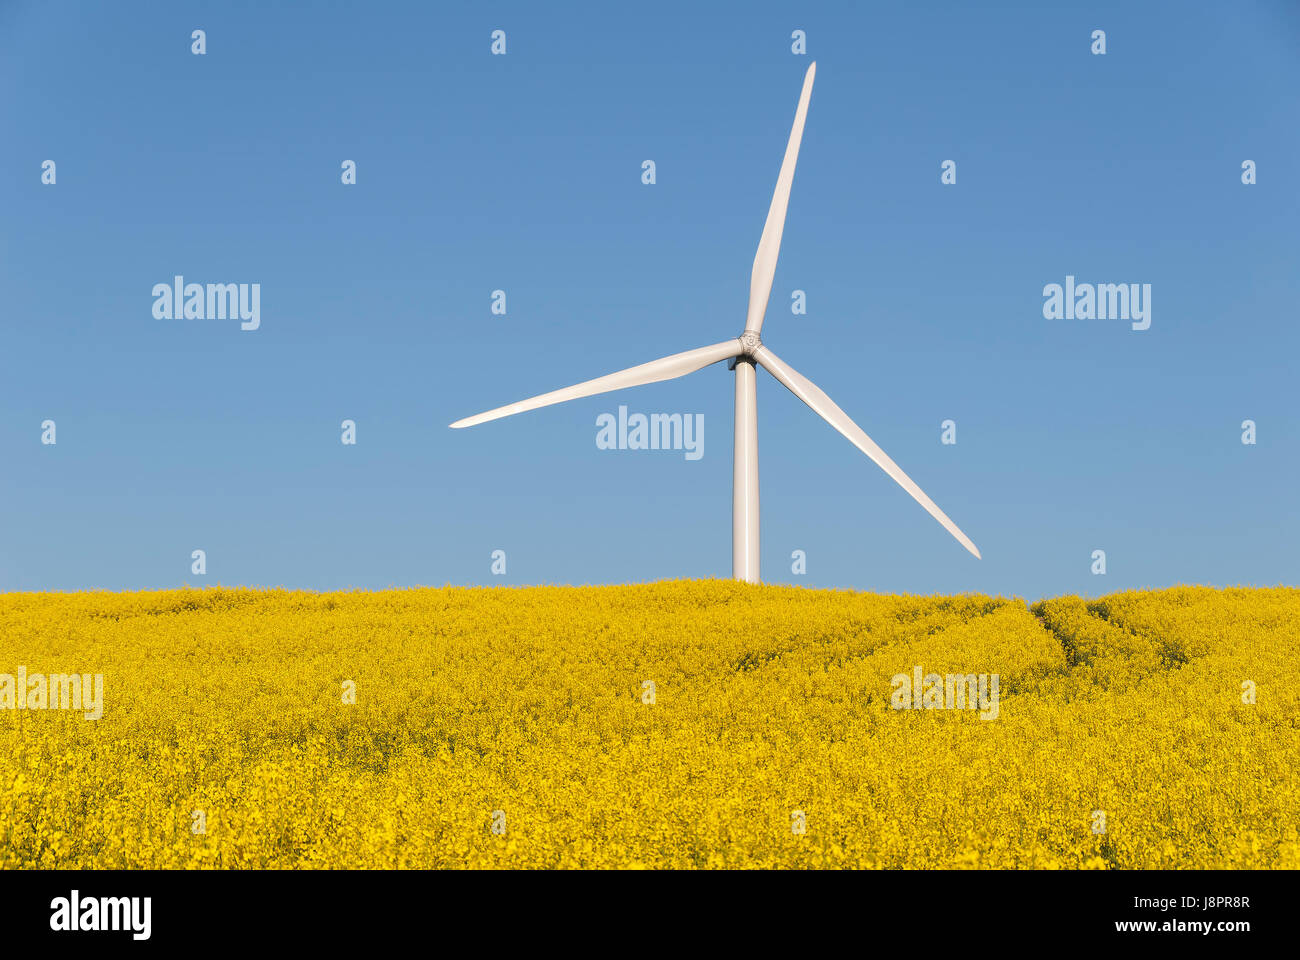 windmill, environment, enviroment, culture, field, energy, power, electricity, - Stock Image